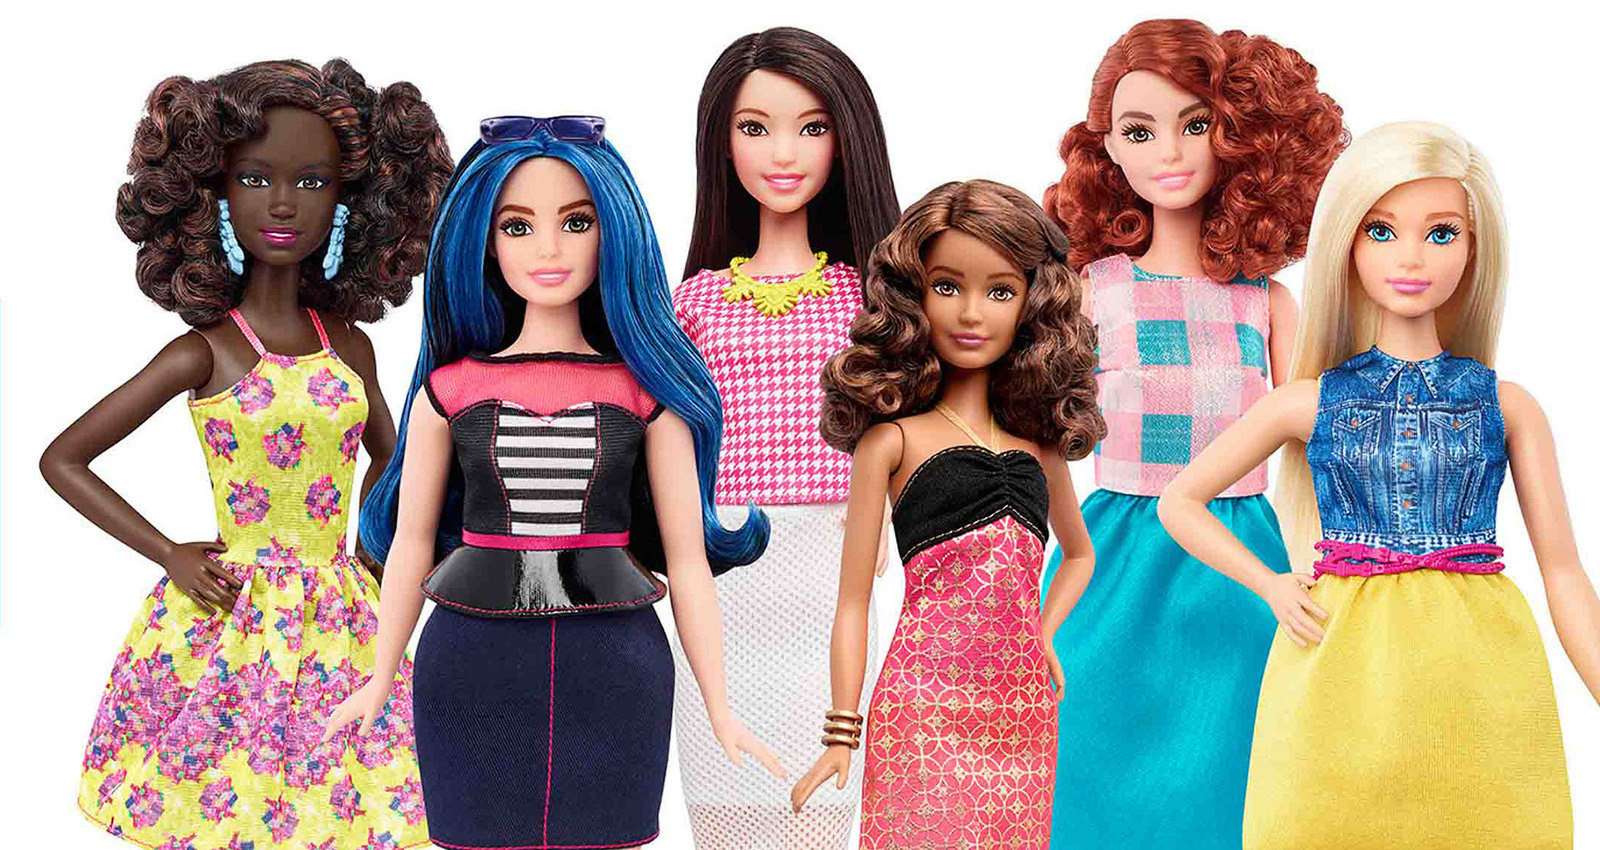 Barbie Evolve the Doll